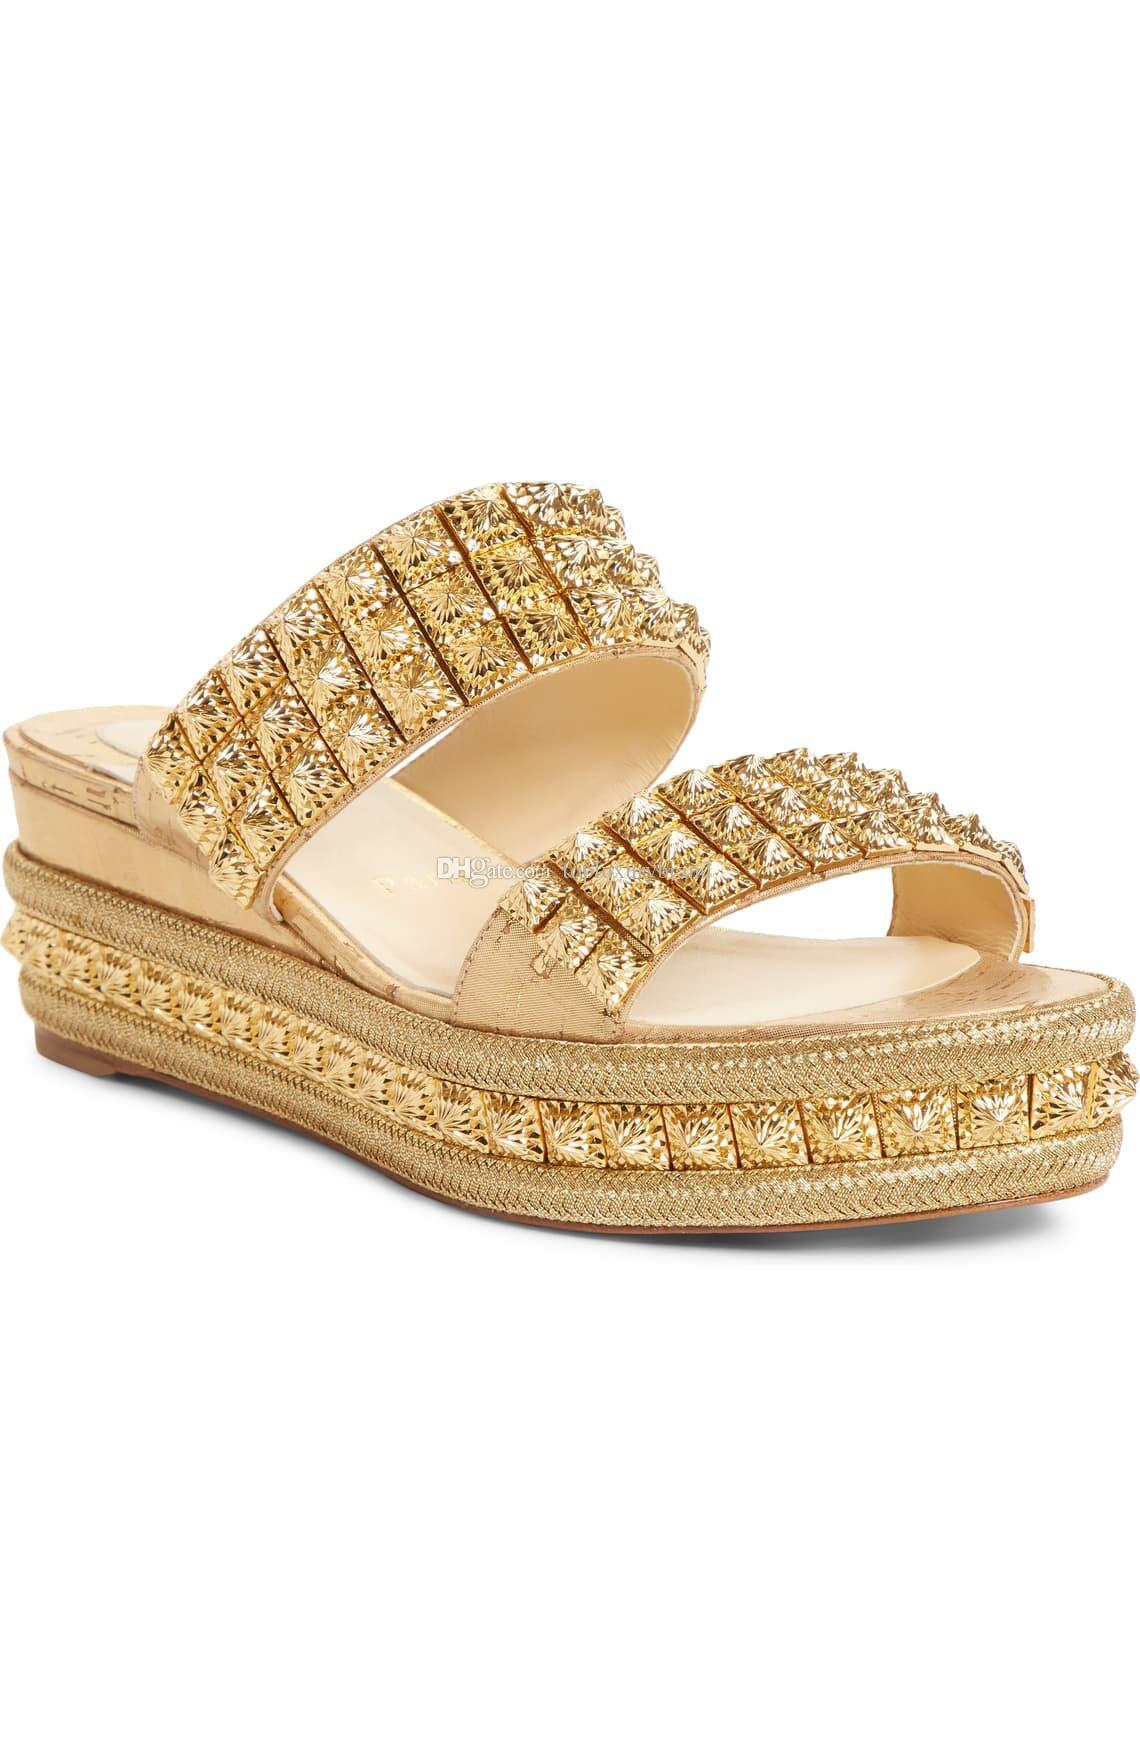 Women Sandals Shoes Red Bottom Wedges Studs Gold Spiked Ecu Style Sandals,60MM Platform Heels Wedge Sandal Woman Wedding Dress Casual Shoes